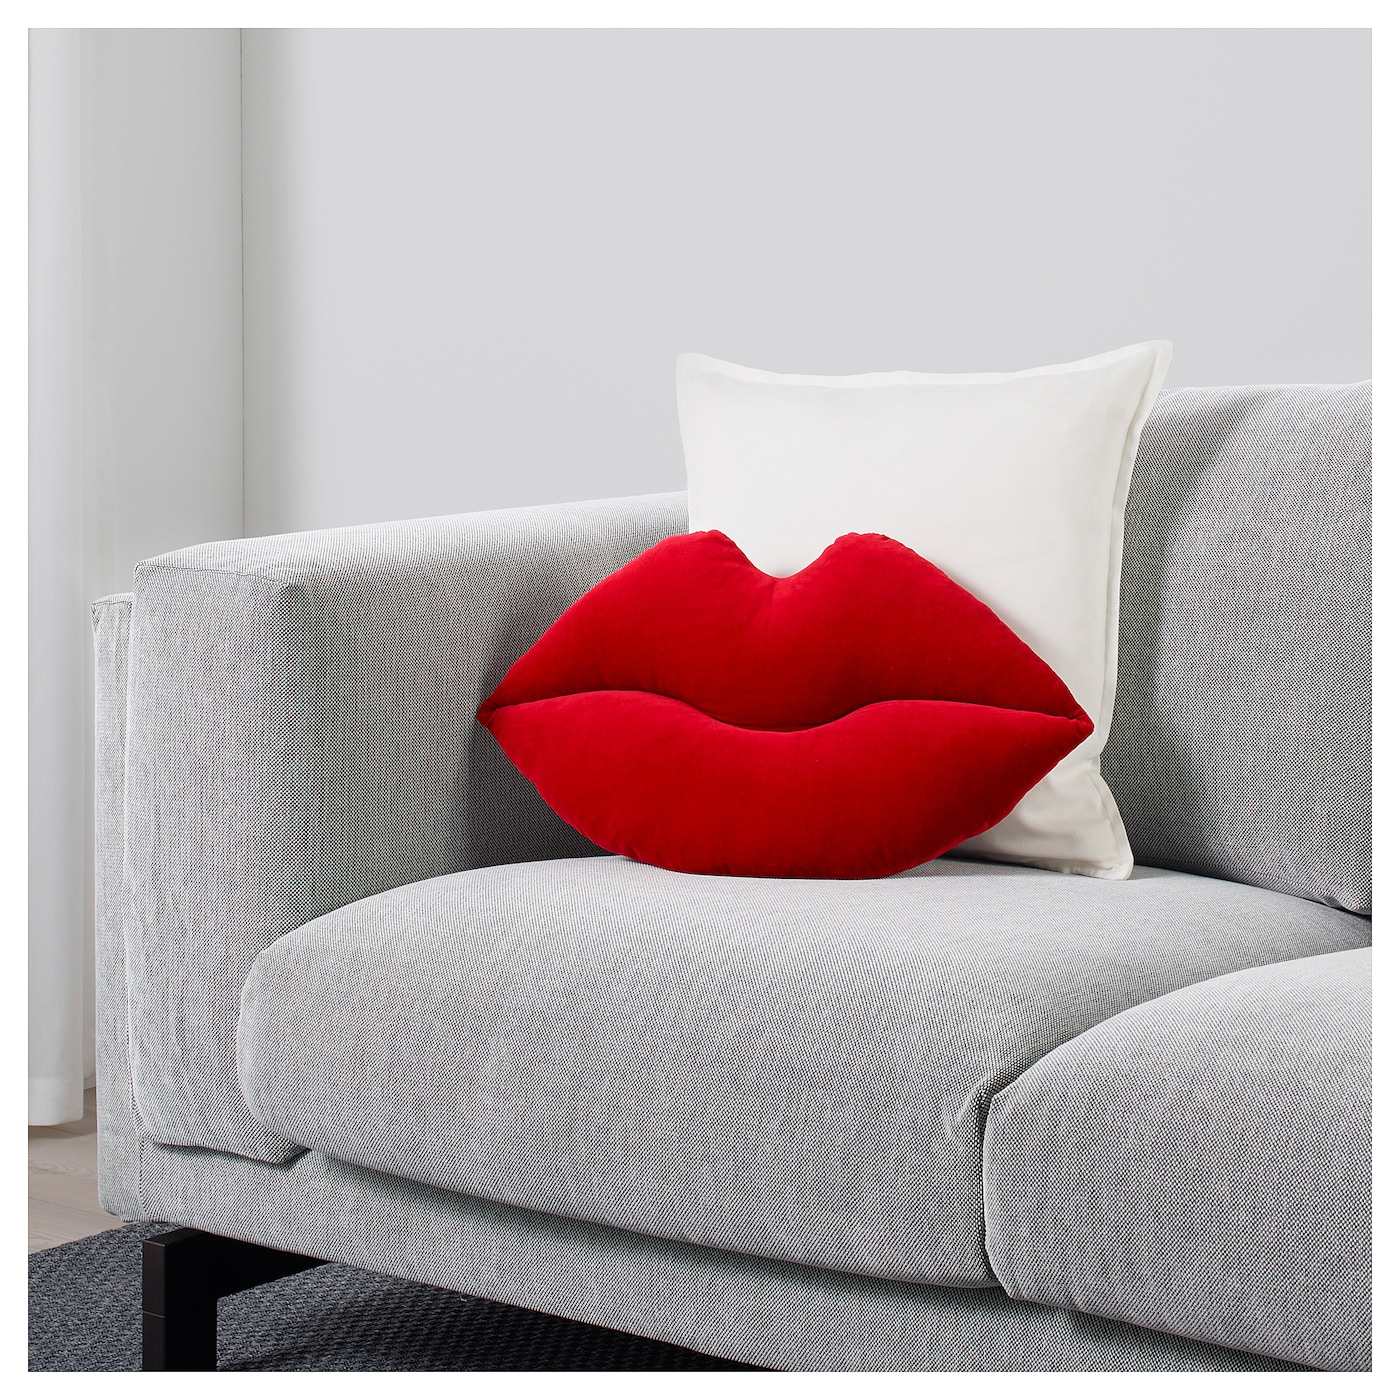 omedelbar coussin en forme de l vre rouge 55x30 cm ikea. Black Bedroom Furniture Sets. Home Design Ideas